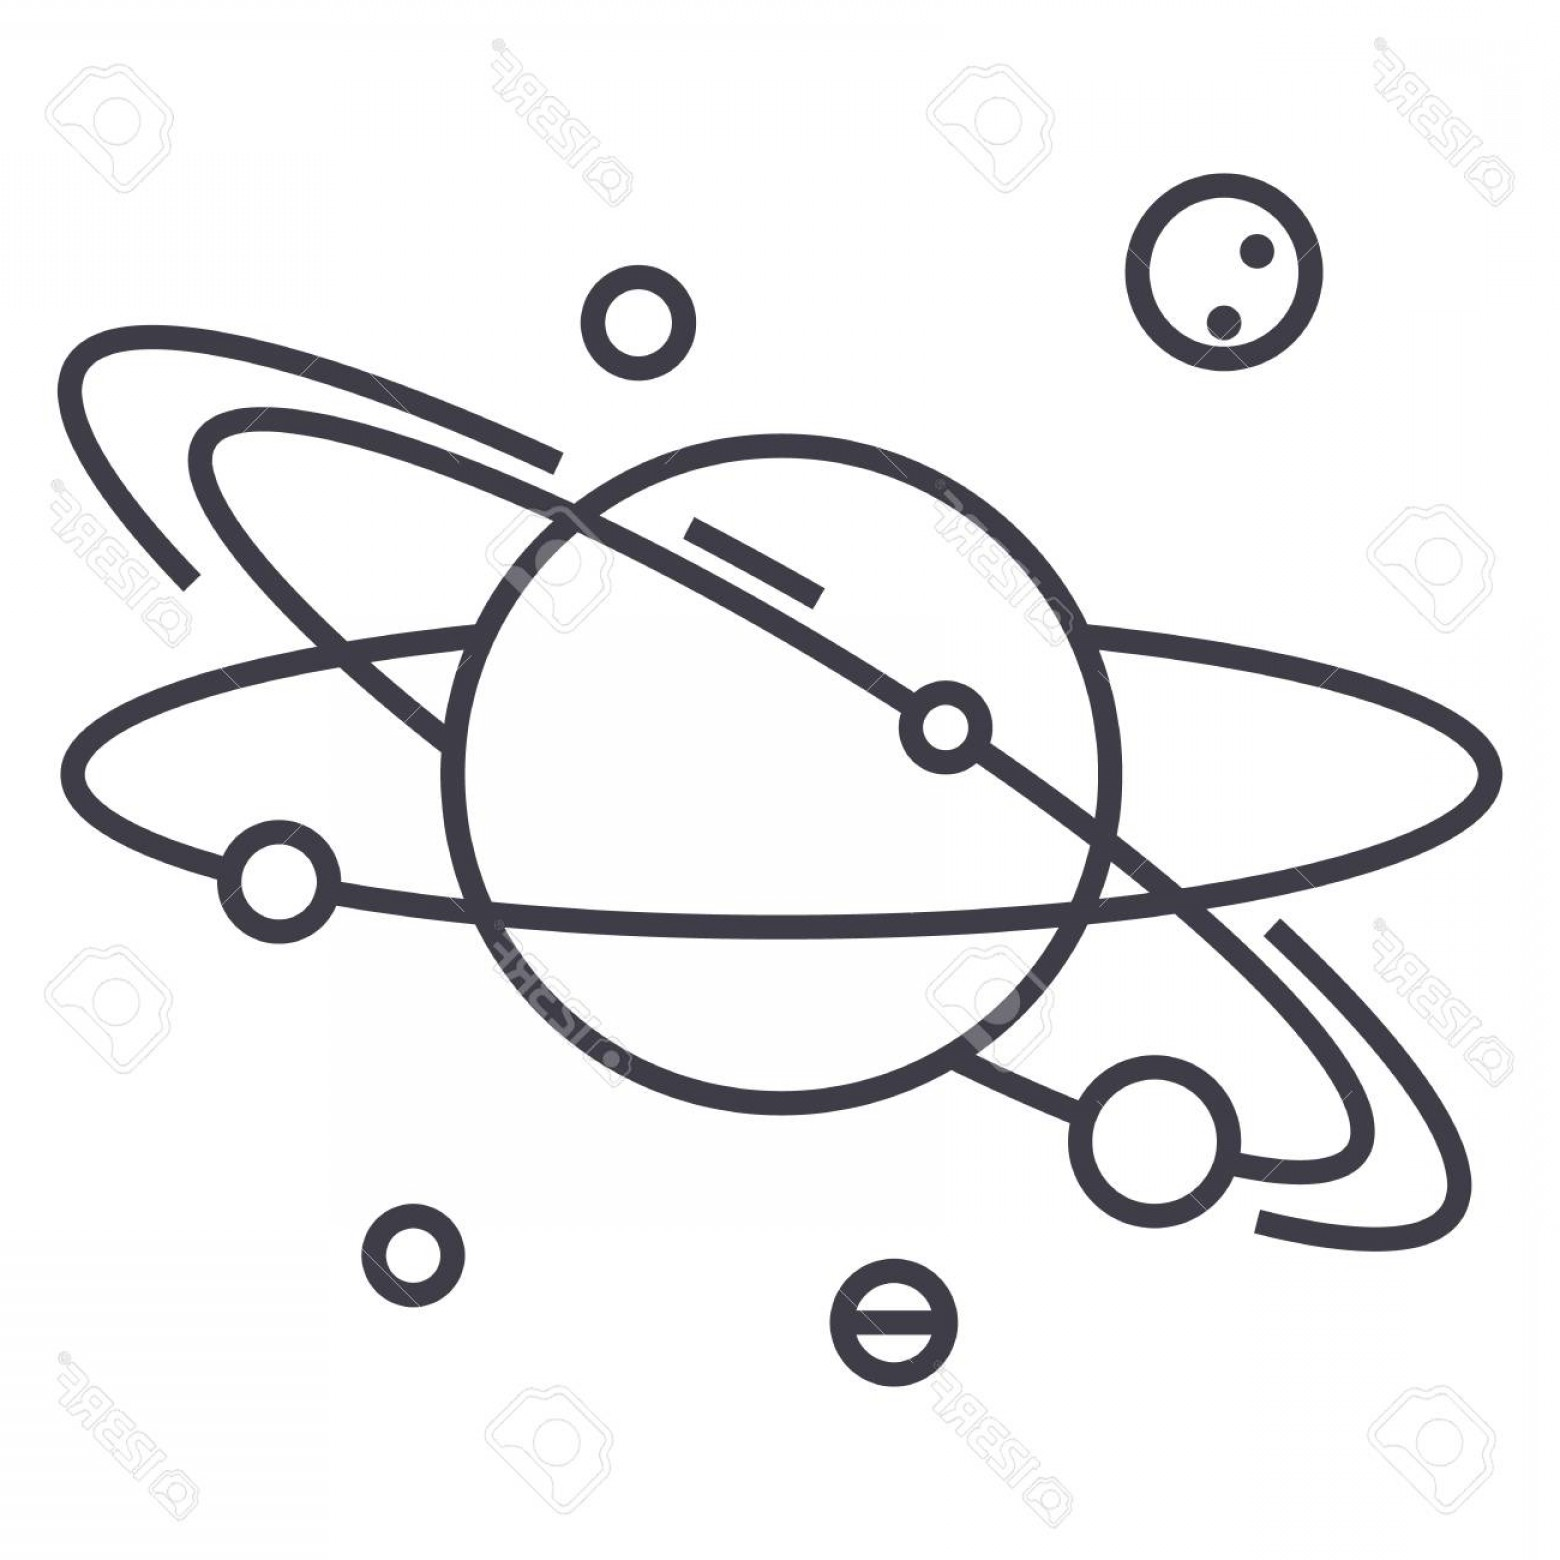 Solar system cartoon black and white clipart graphic free library Solar System Cartoon Drawing | Free download best Solar ... graphic free library